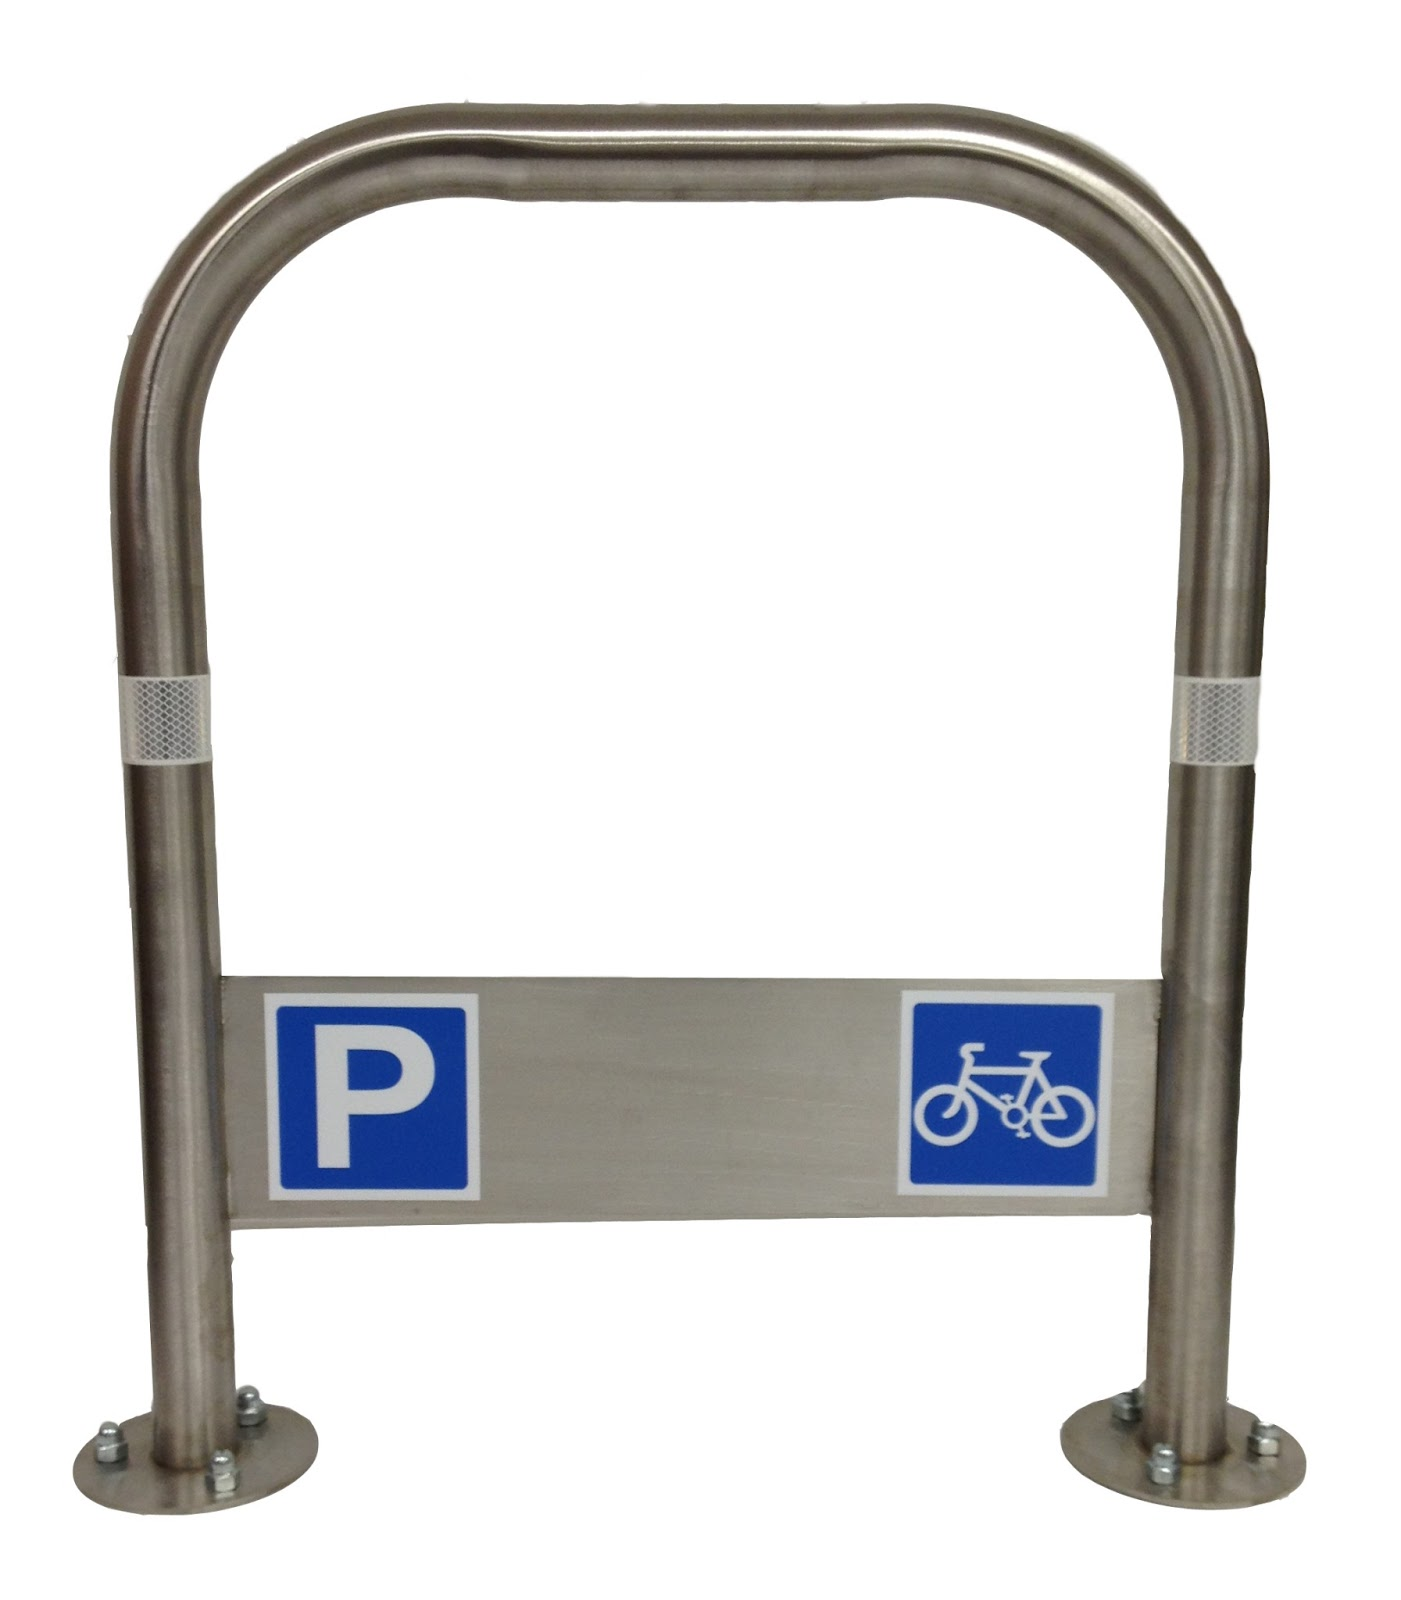 Barricade fabrications stainless steel bollards from